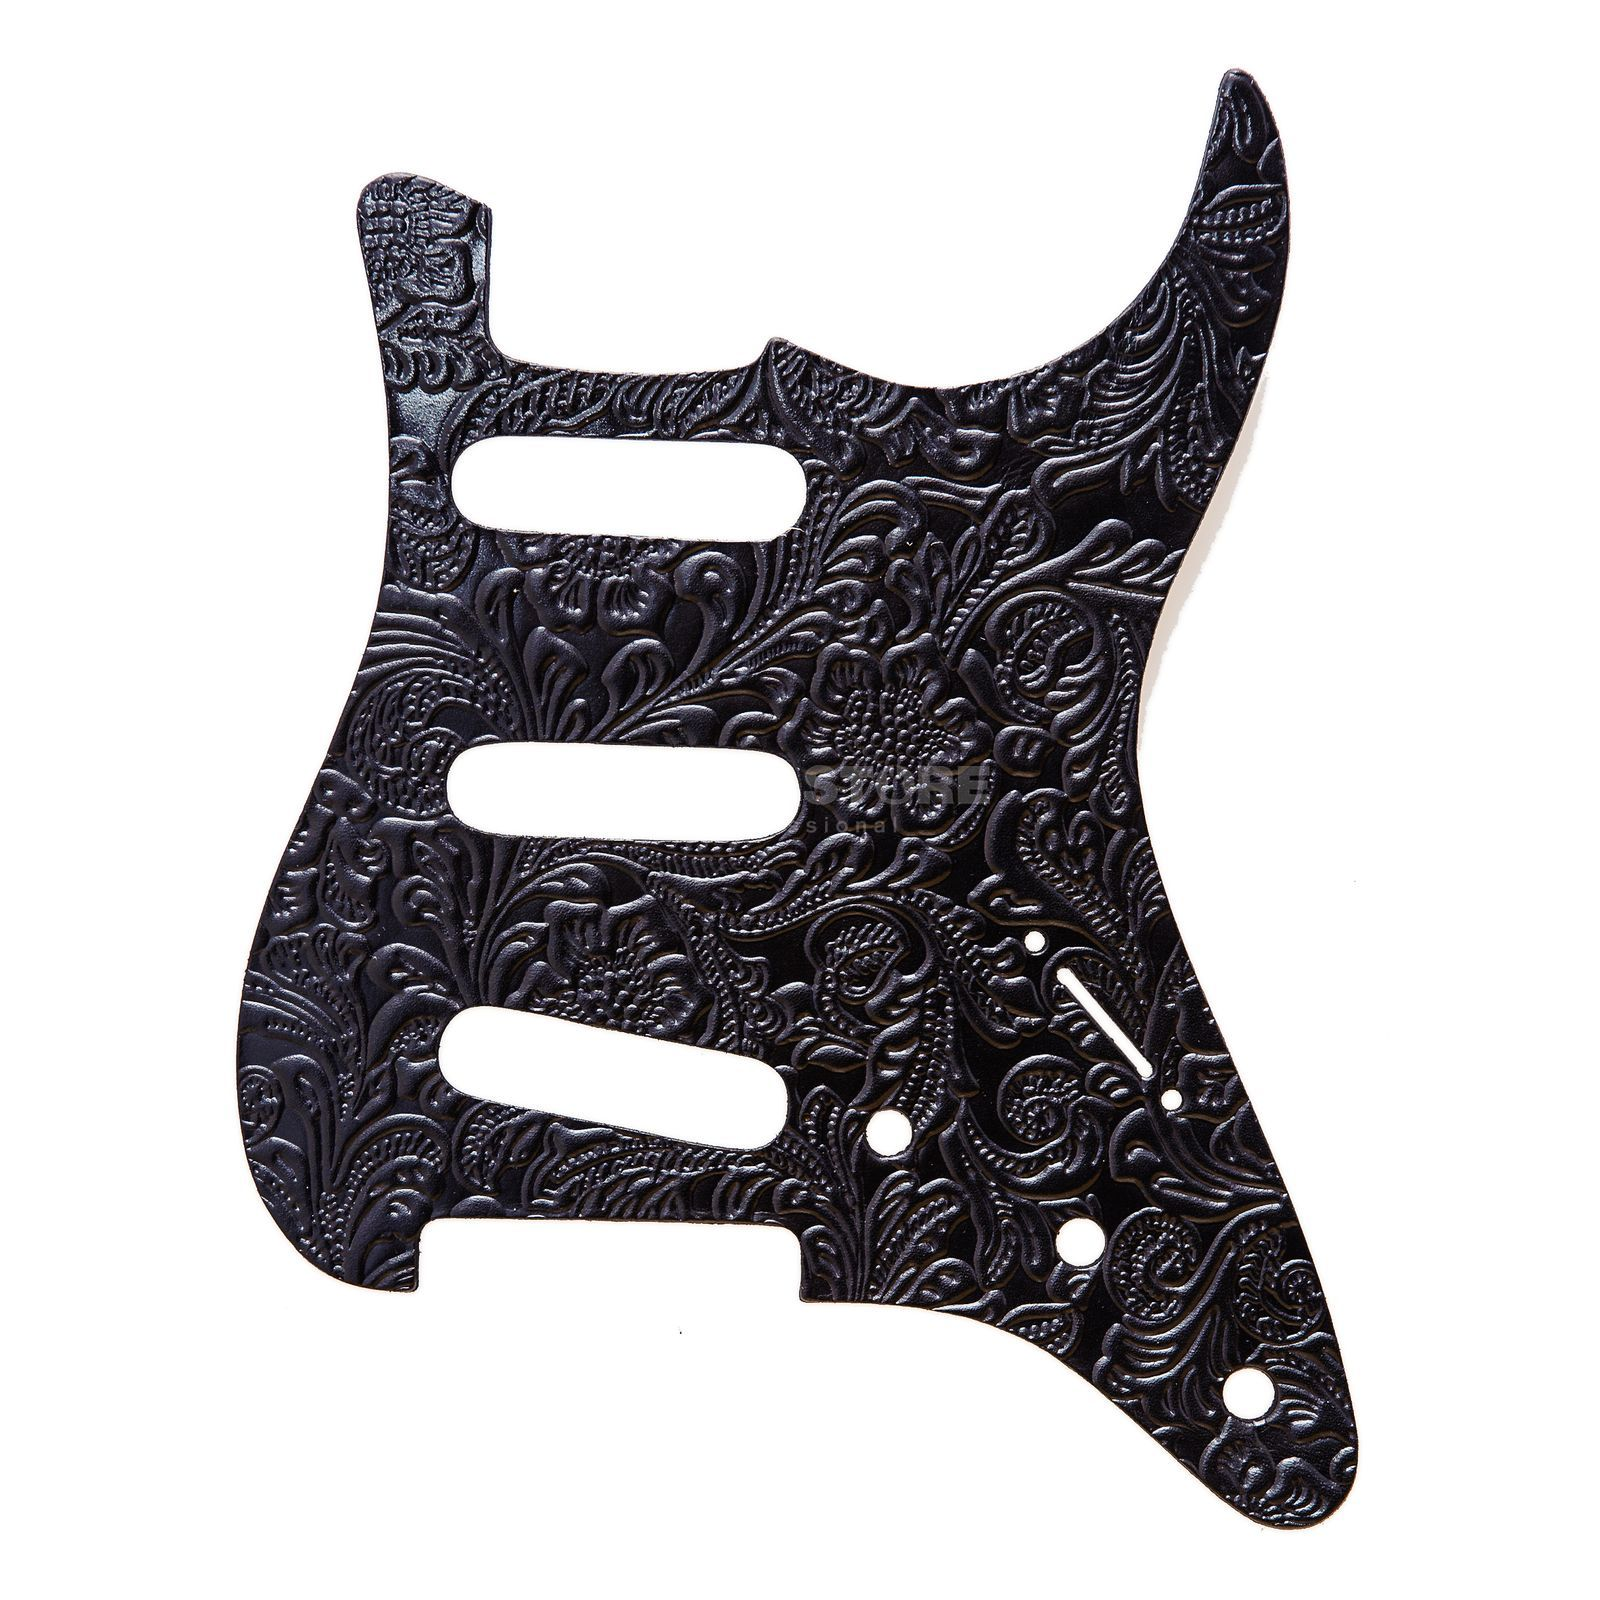 RightOn! Straps Pickguard S-Style Black Leather Engraved Produktbillede